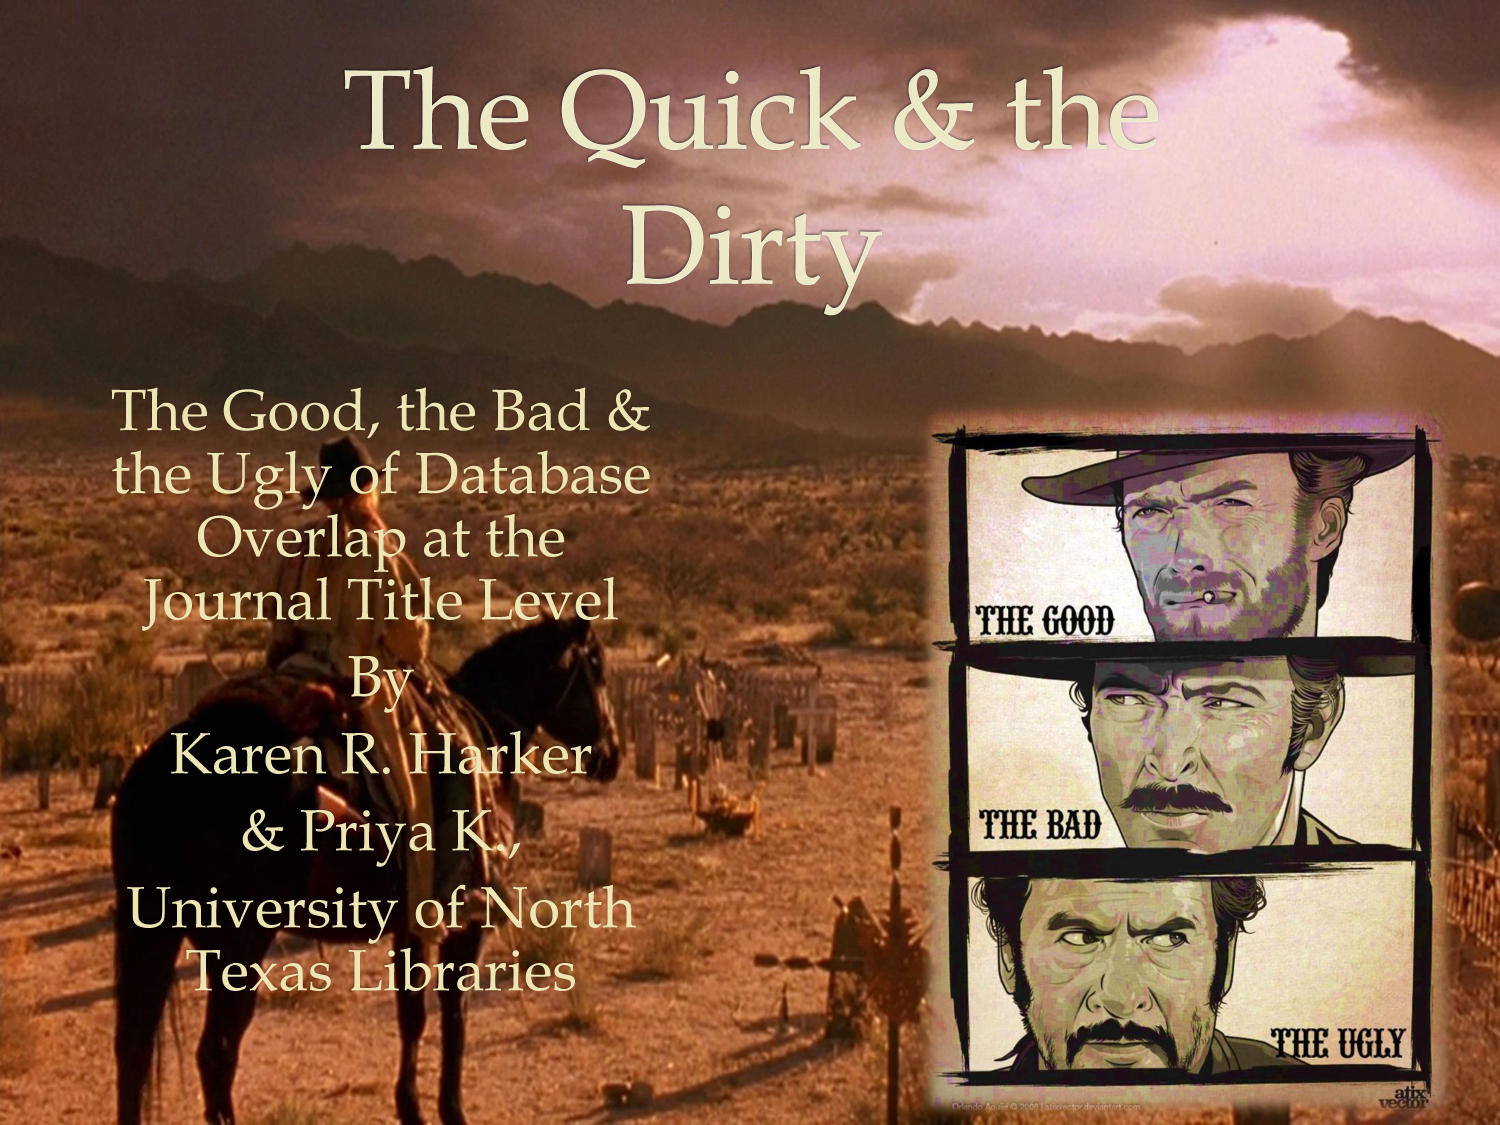 The Quick and the Dirty: The Good, the Bad and the Ugly of Database Overlap at the Journal Title Level                                                                                                      [Sequence #]: 1 of 45